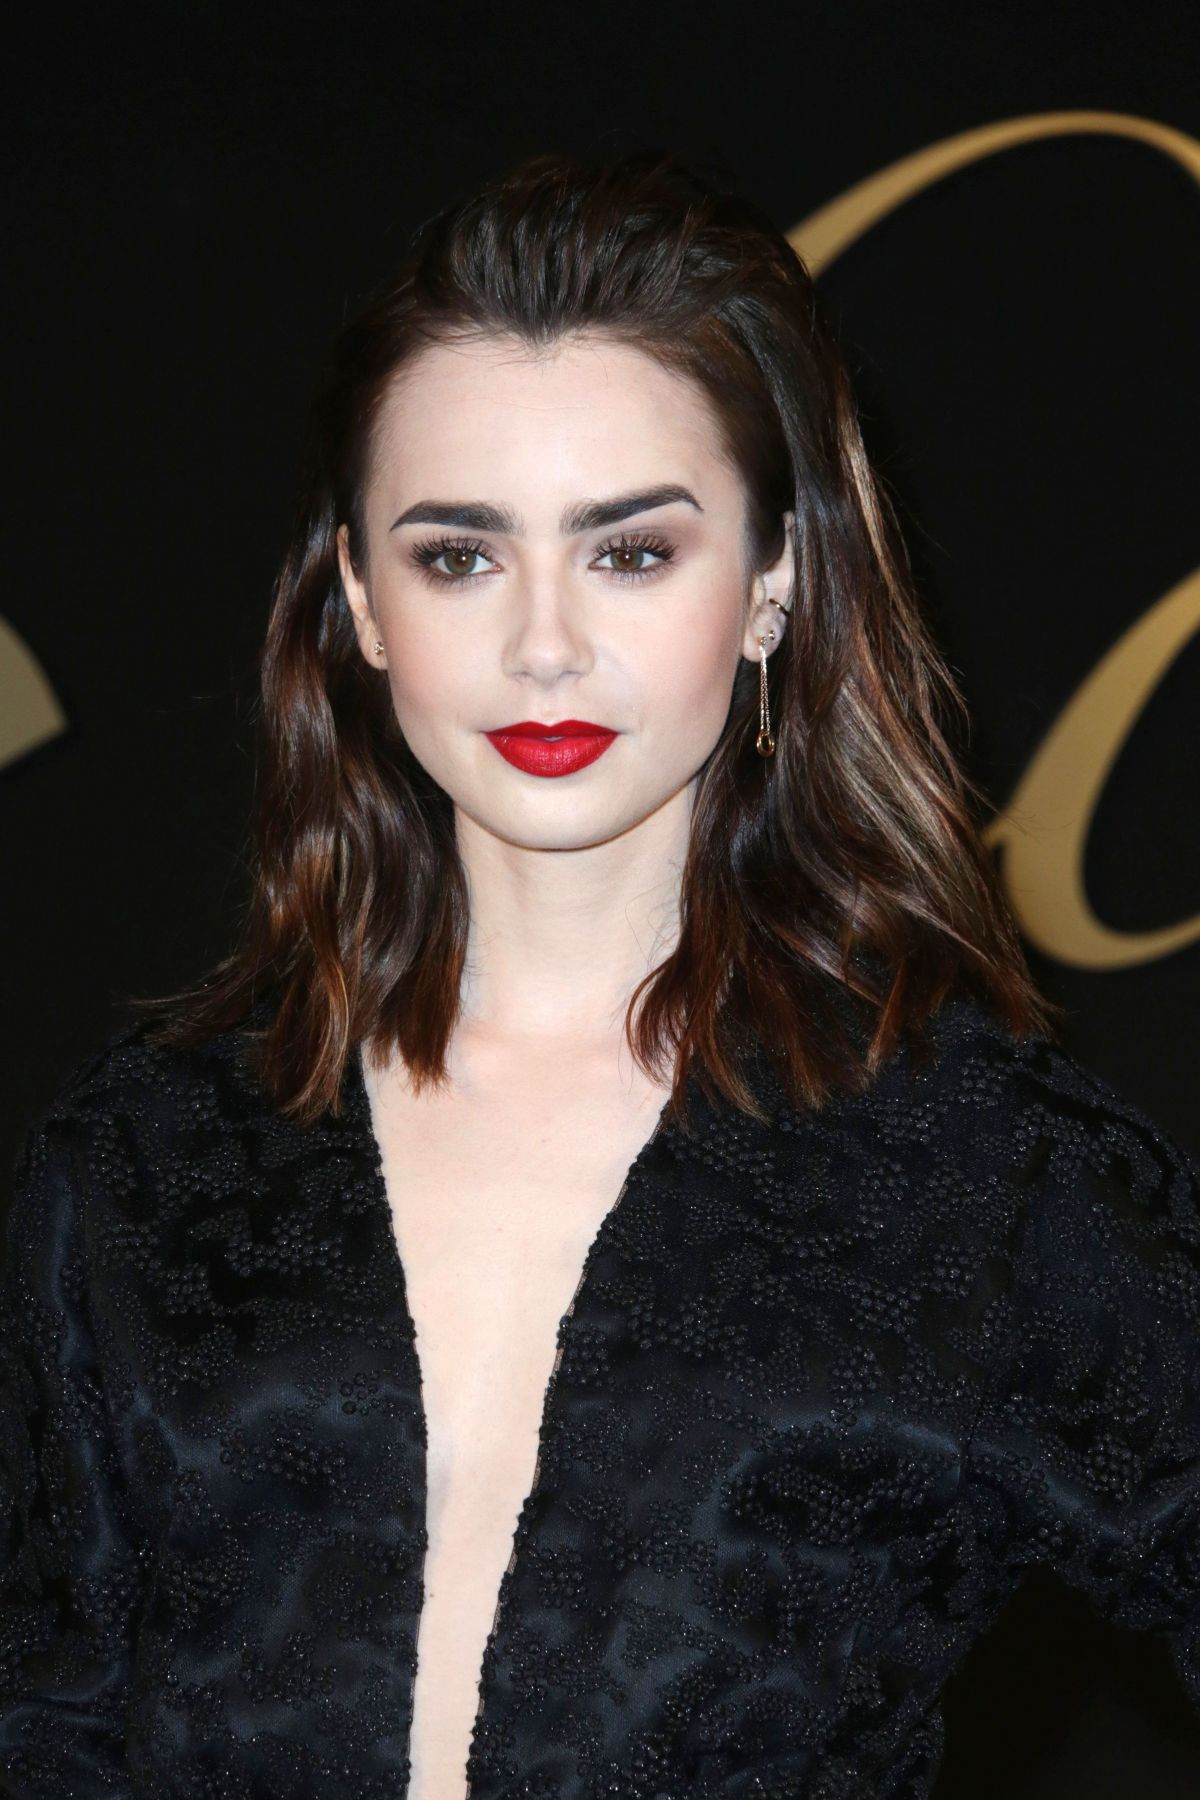 Lily collins panthere de cartier watch launch in la - 2019 year